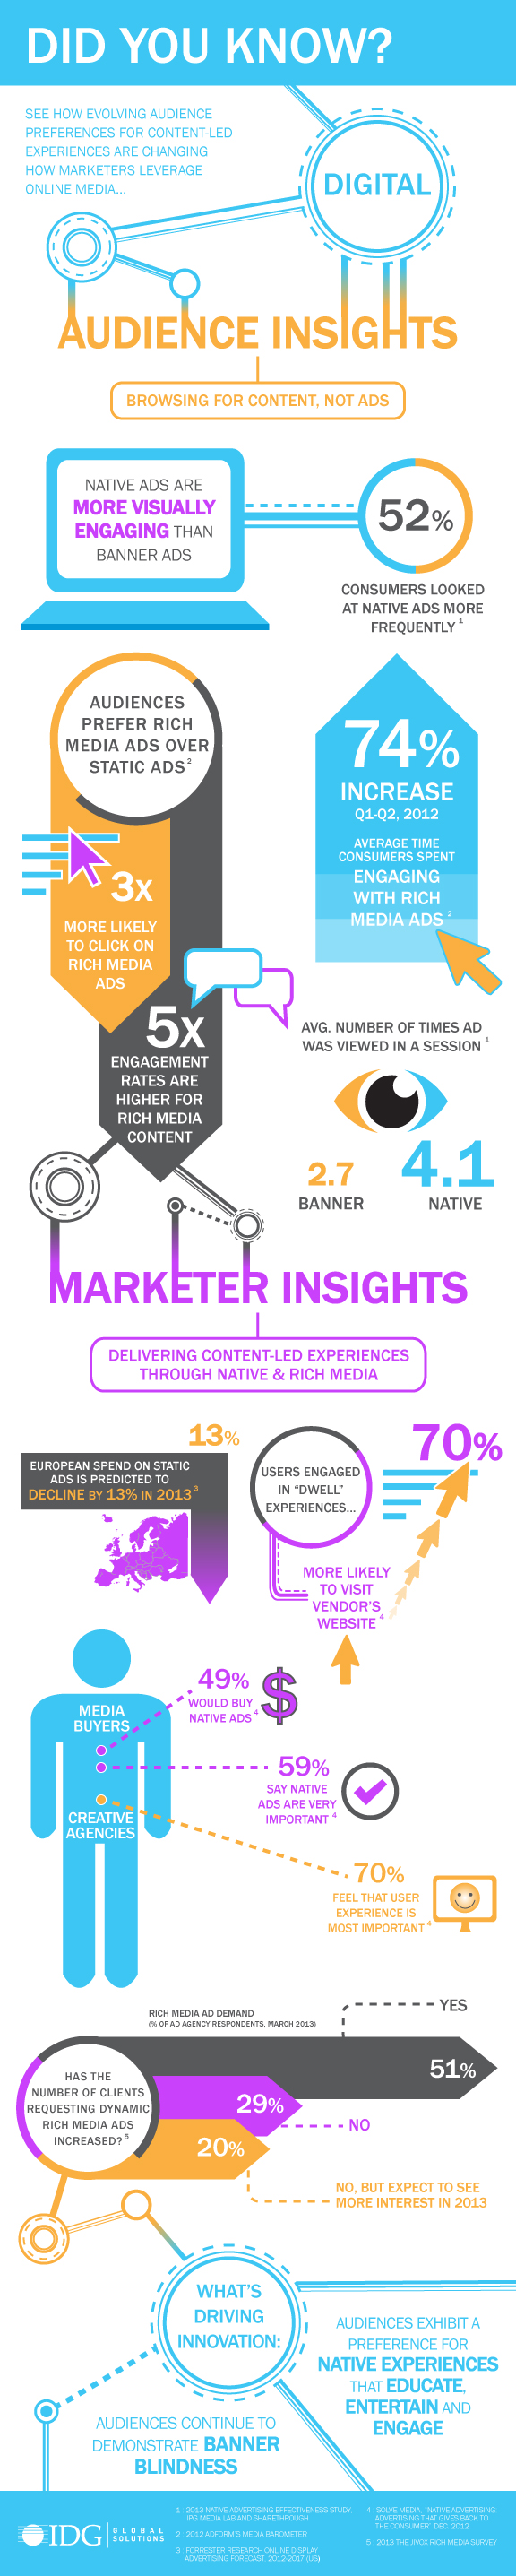 Native Advertising and Marketing